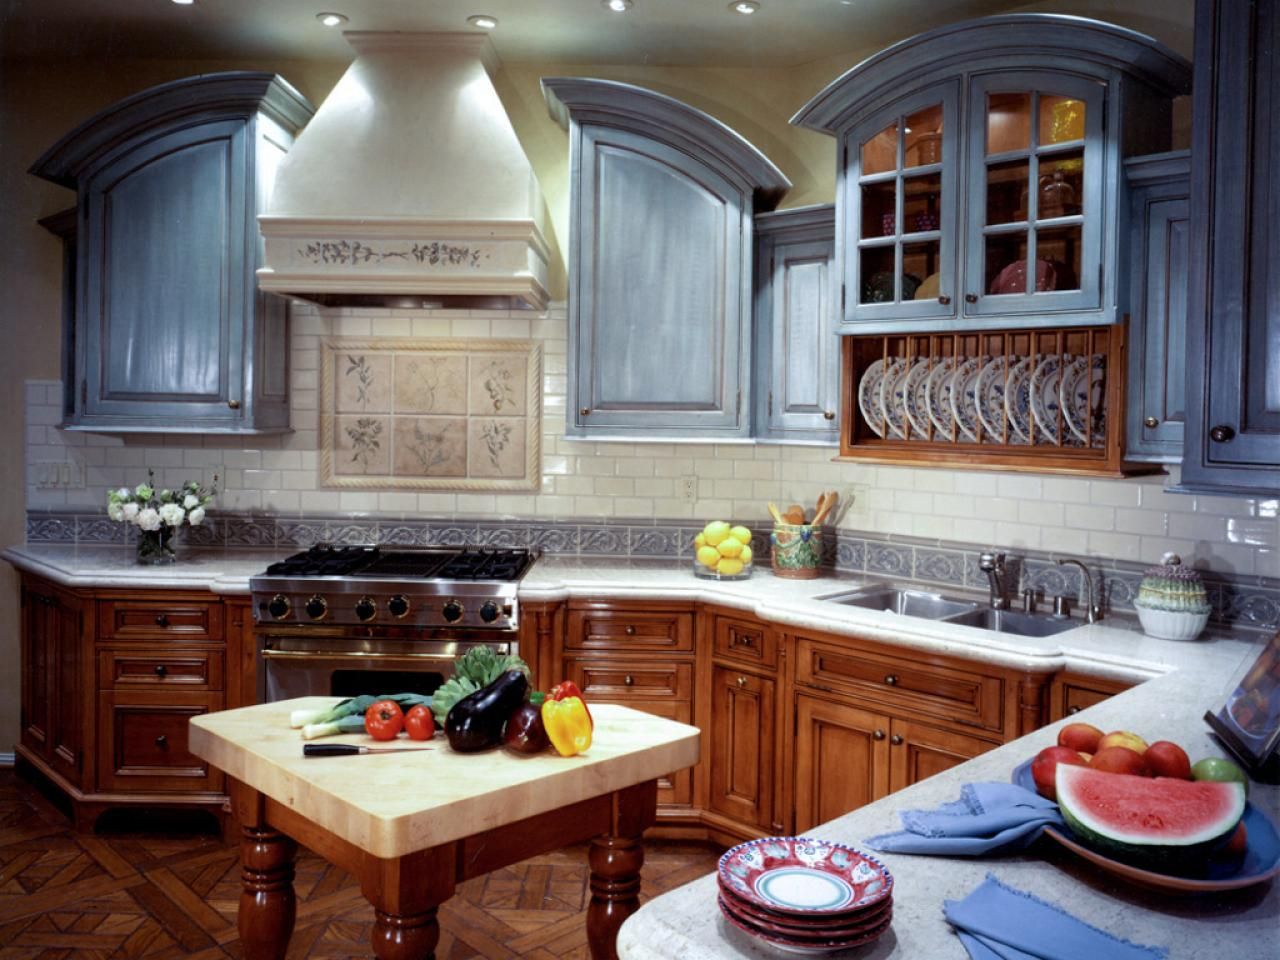 Painting Kitchen Cabinet Doors: Pictures & Ideas From HGTV